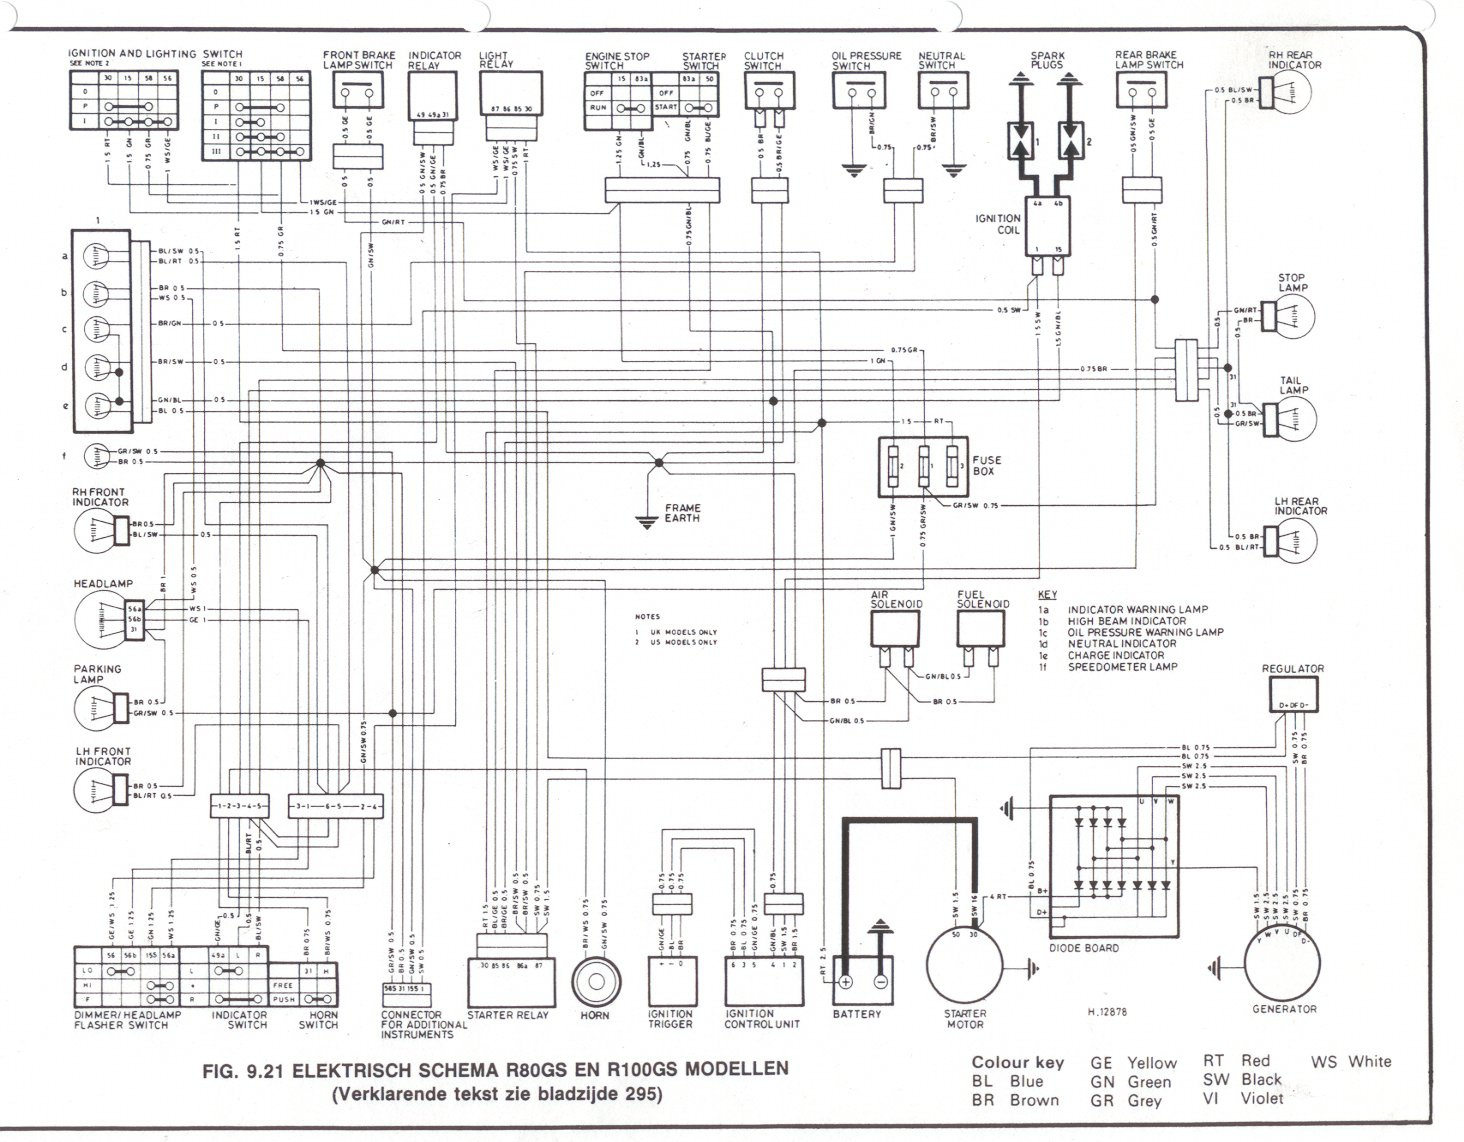 R80 100GS Schematic bmw r100 info thiel org za bmw r100rs gauge wiring diagram at creativeand.co